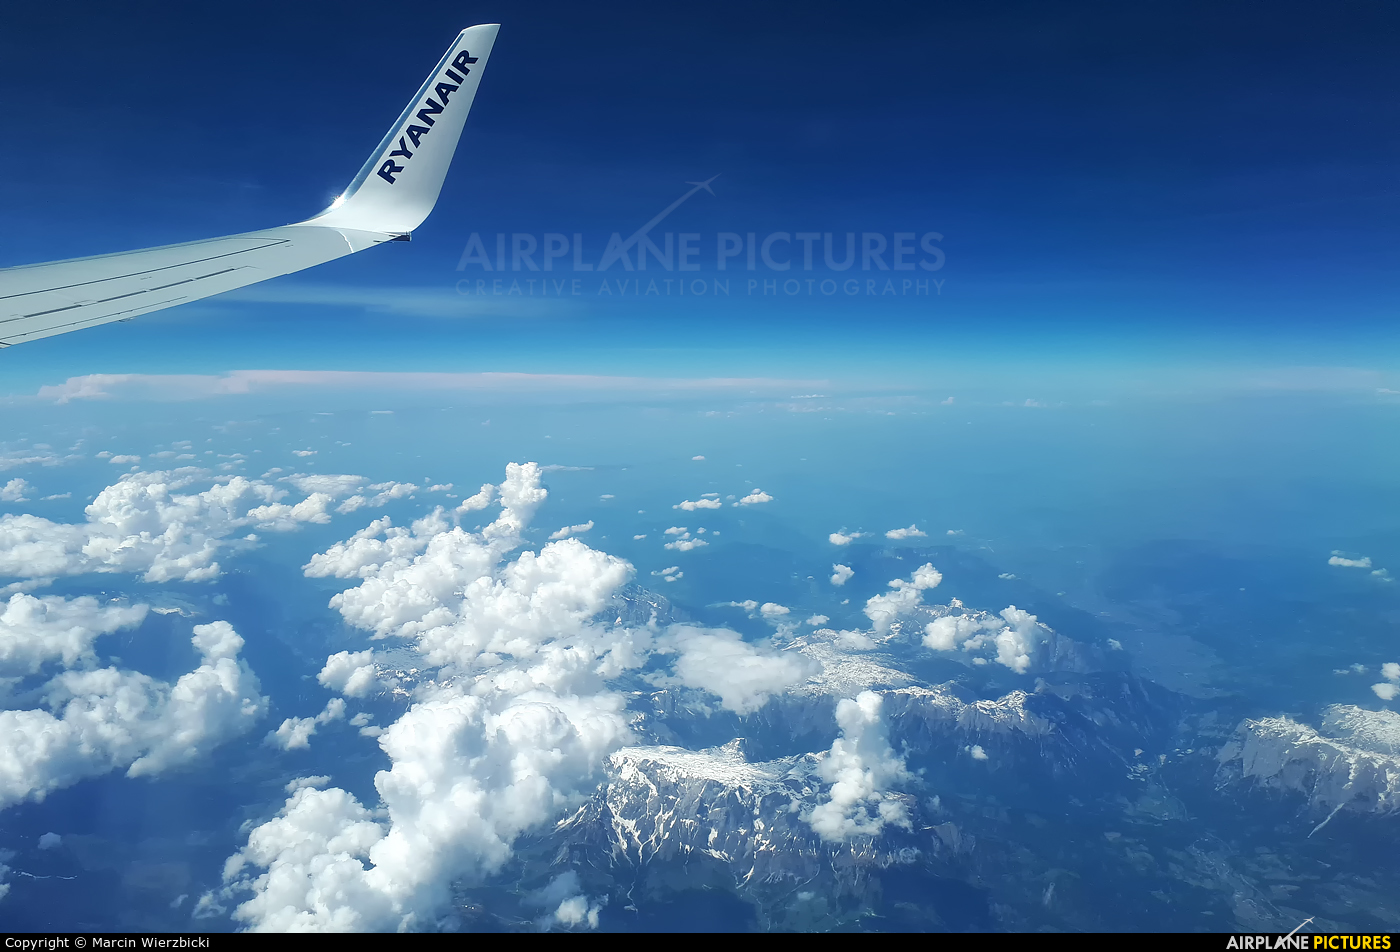 Ryanair EI-FEF aircraft at In Flight - International